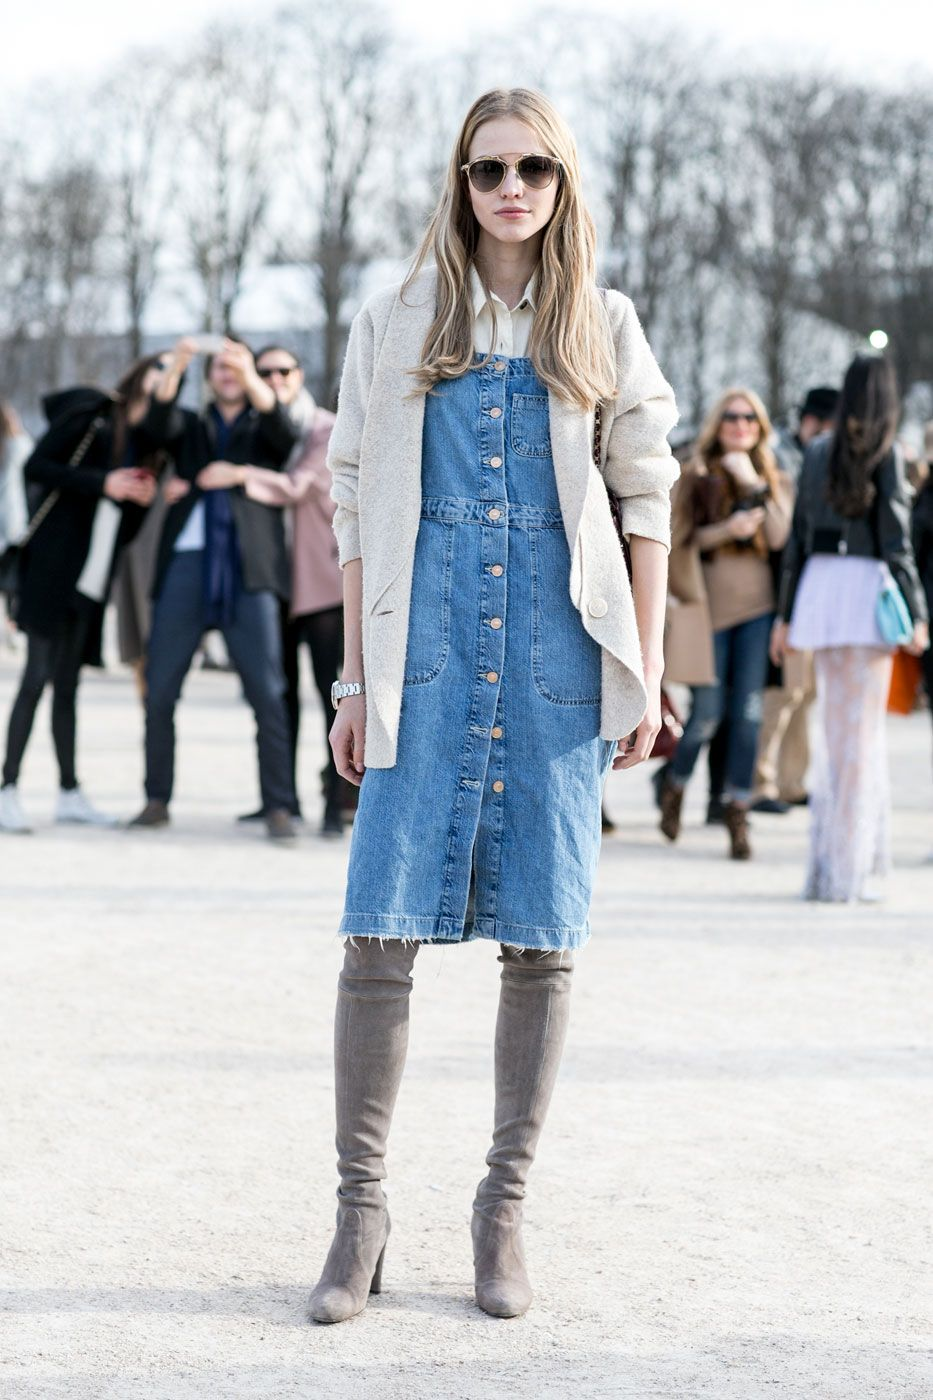 Sasha doing denim. Paris. #SashaLuss #offduty